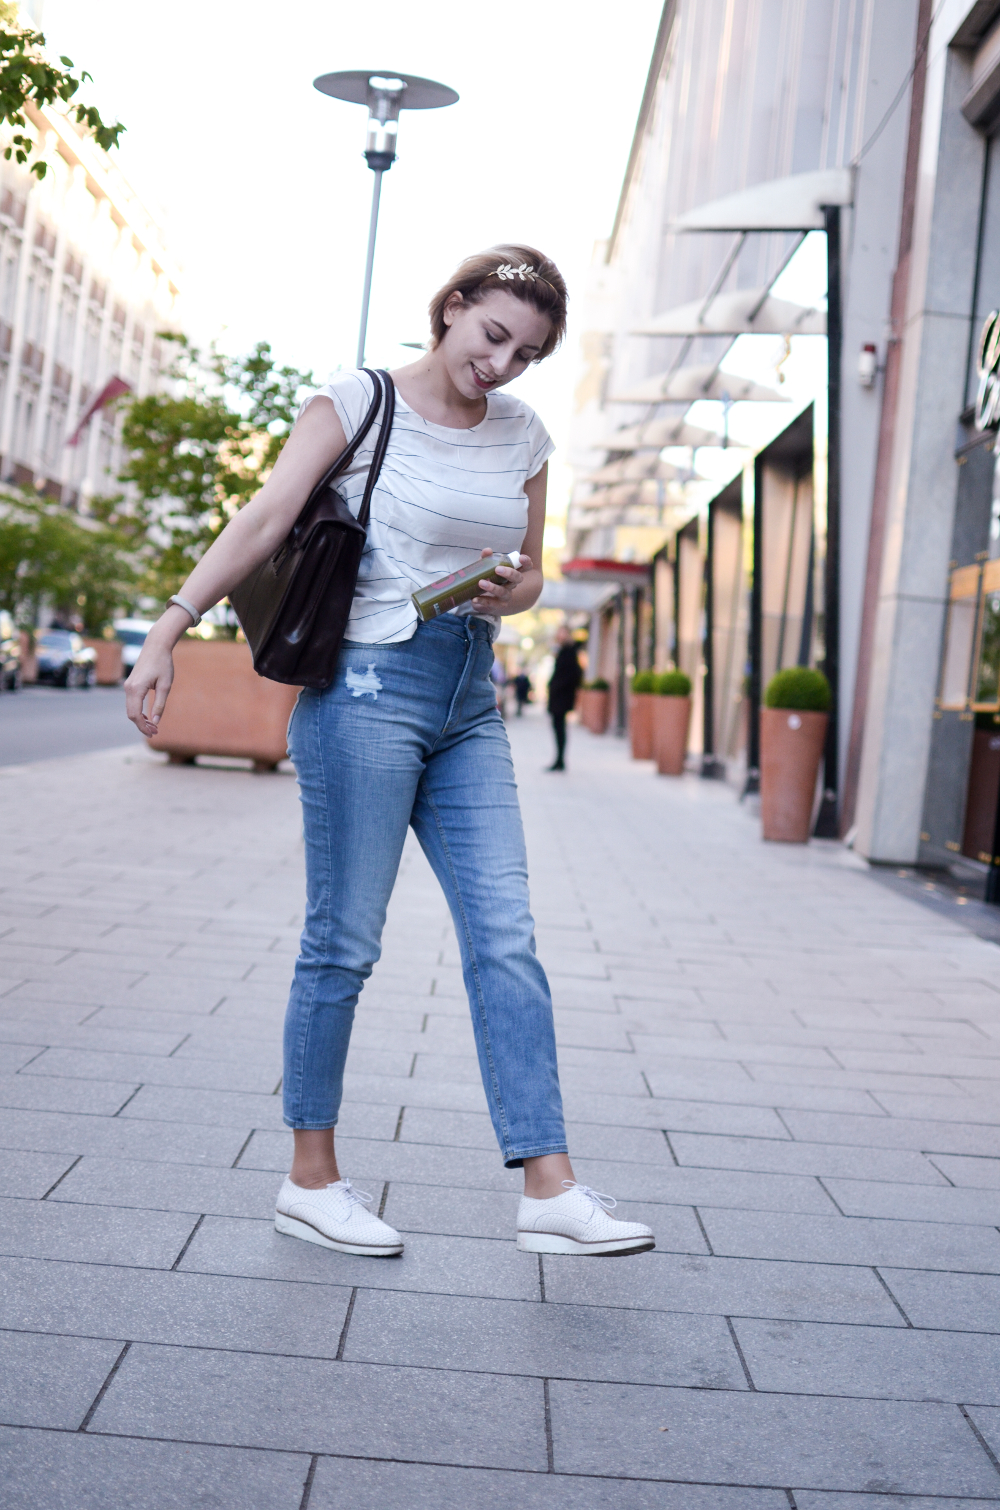 Mom Jeans, Streifenshirt, Outfit | Kale and me Detox | Maxwell Scott Bag | Uni Outfit |Glasschuh.com